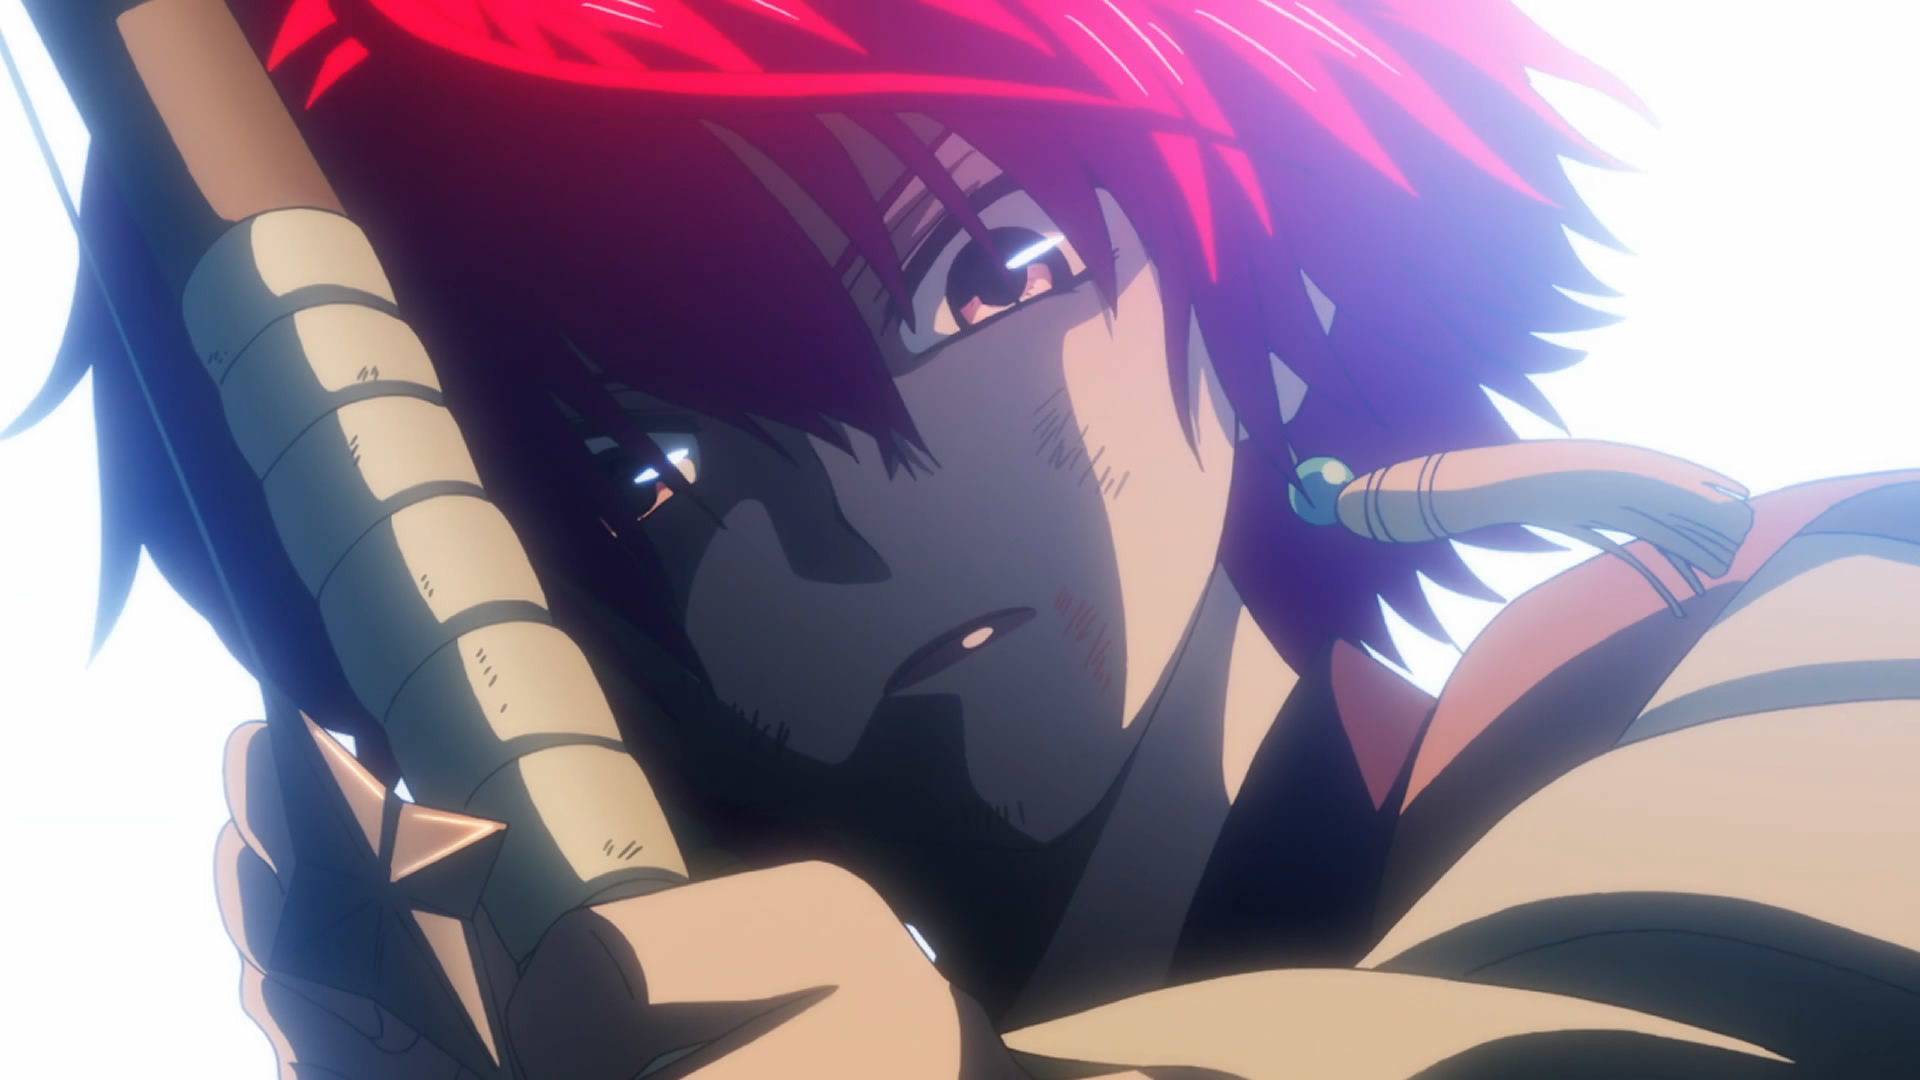 … Yona was simply stunning …